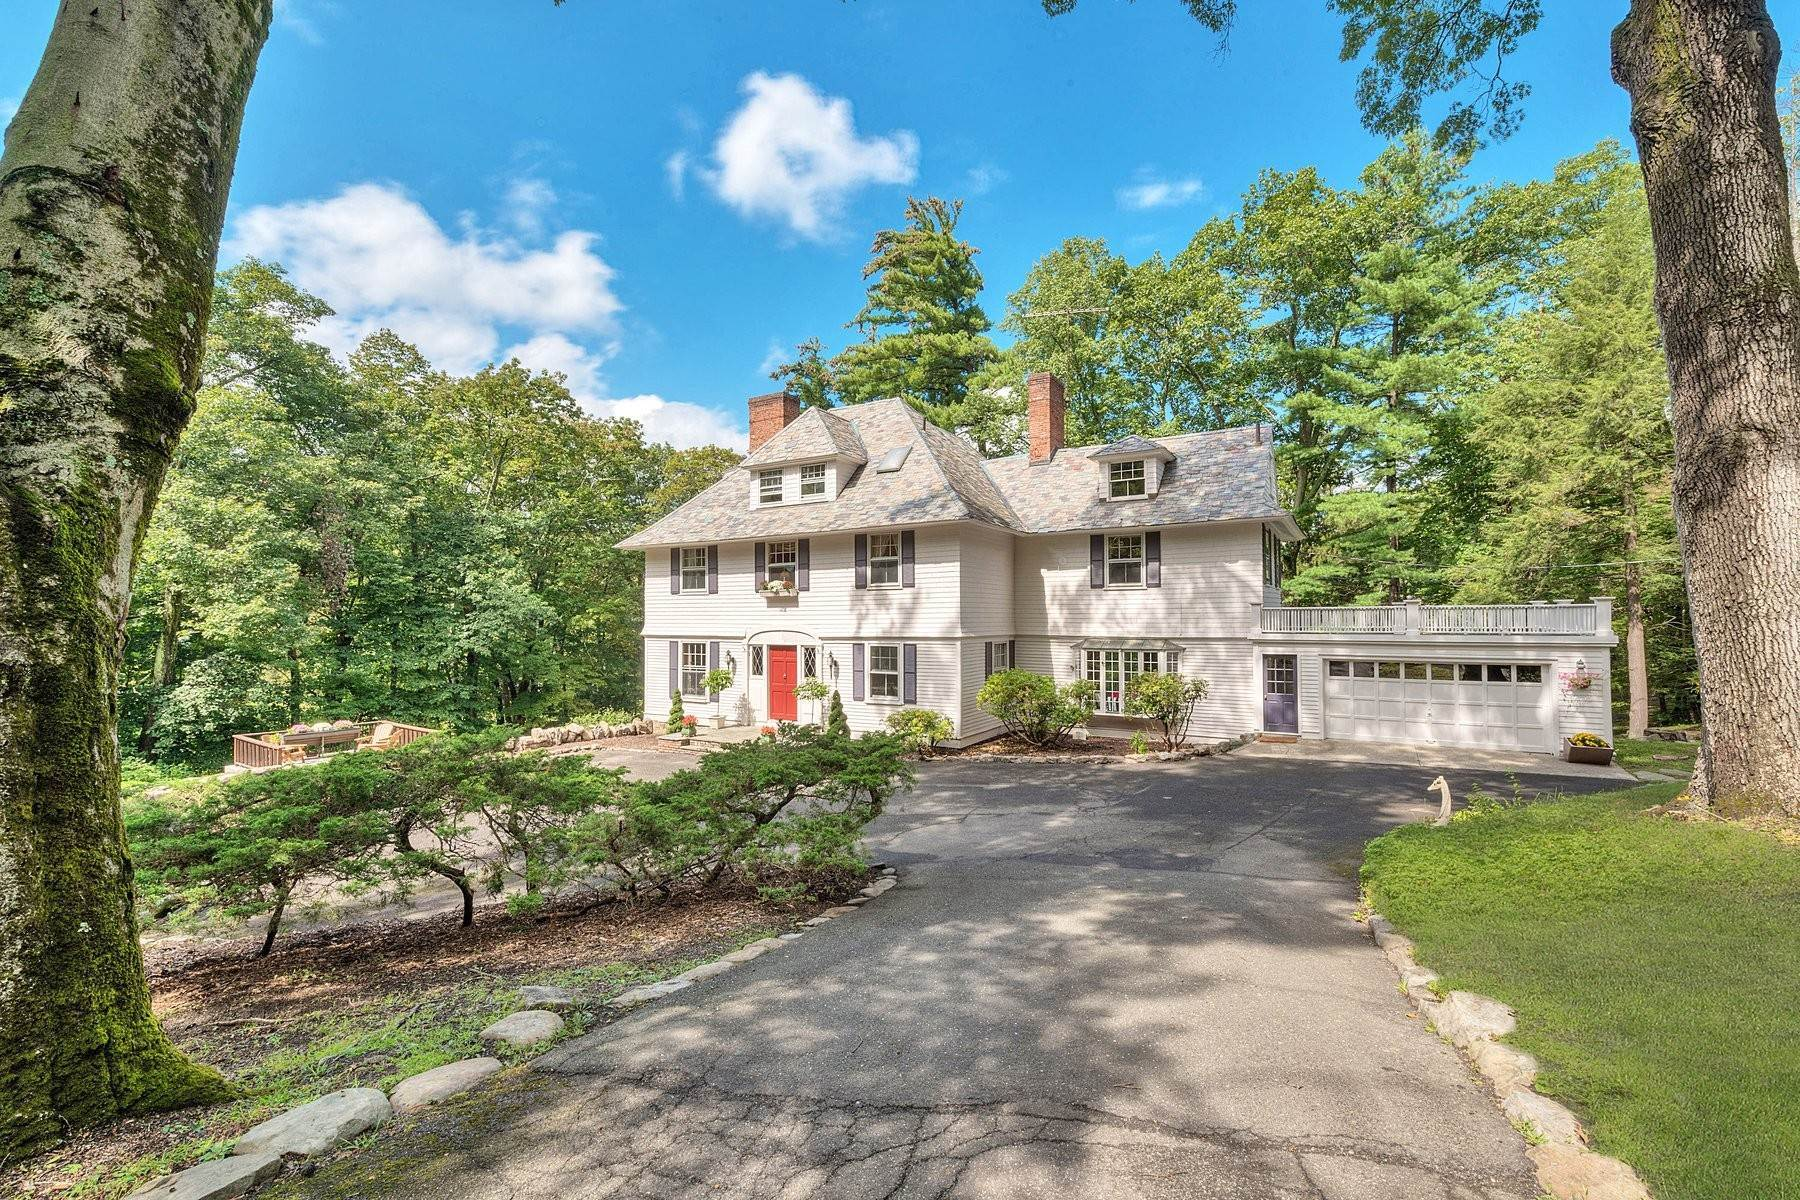 Single Family Homes for Sale at 'Horace Waldo Cottage' 160 Continental Road Tuxedo Park, New York 10987 United States